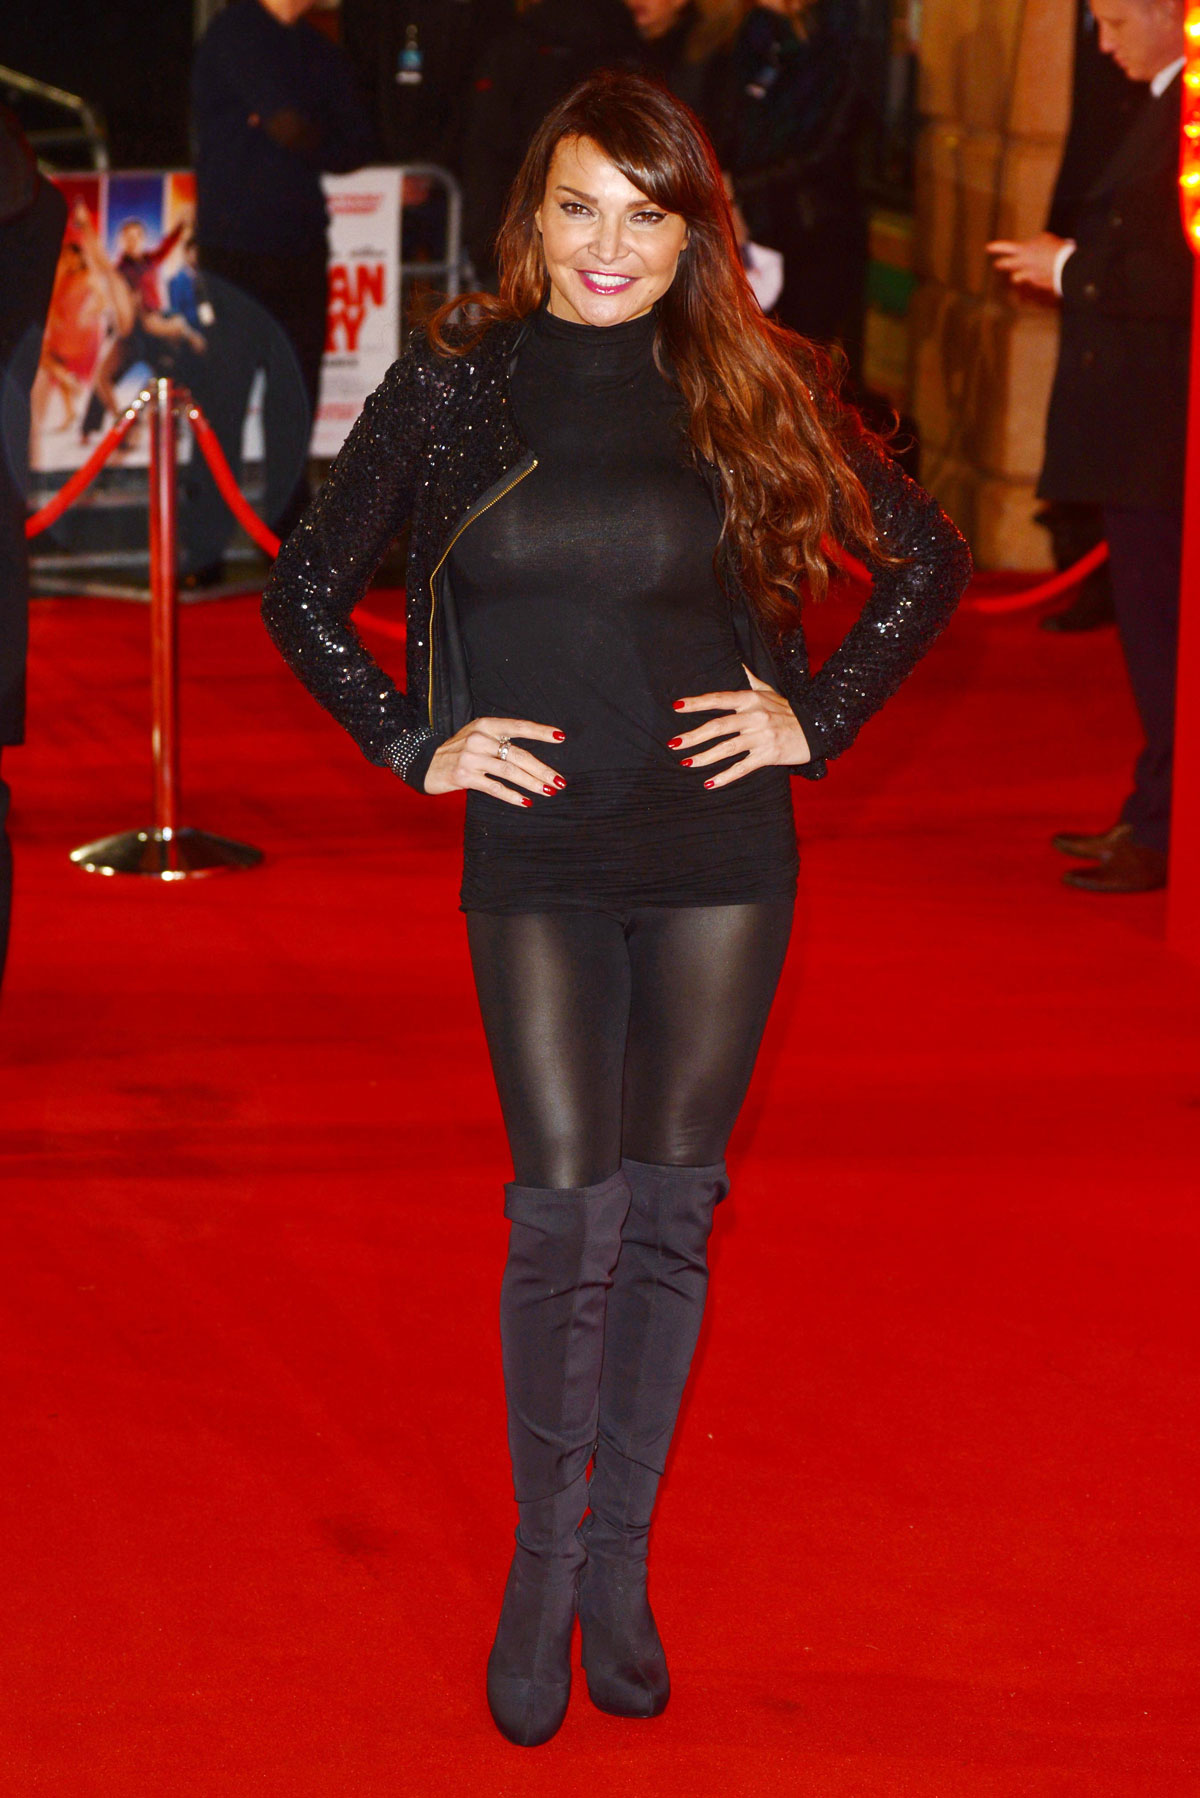 Lizzie Cundy attends World Premiere of Cuban Fury